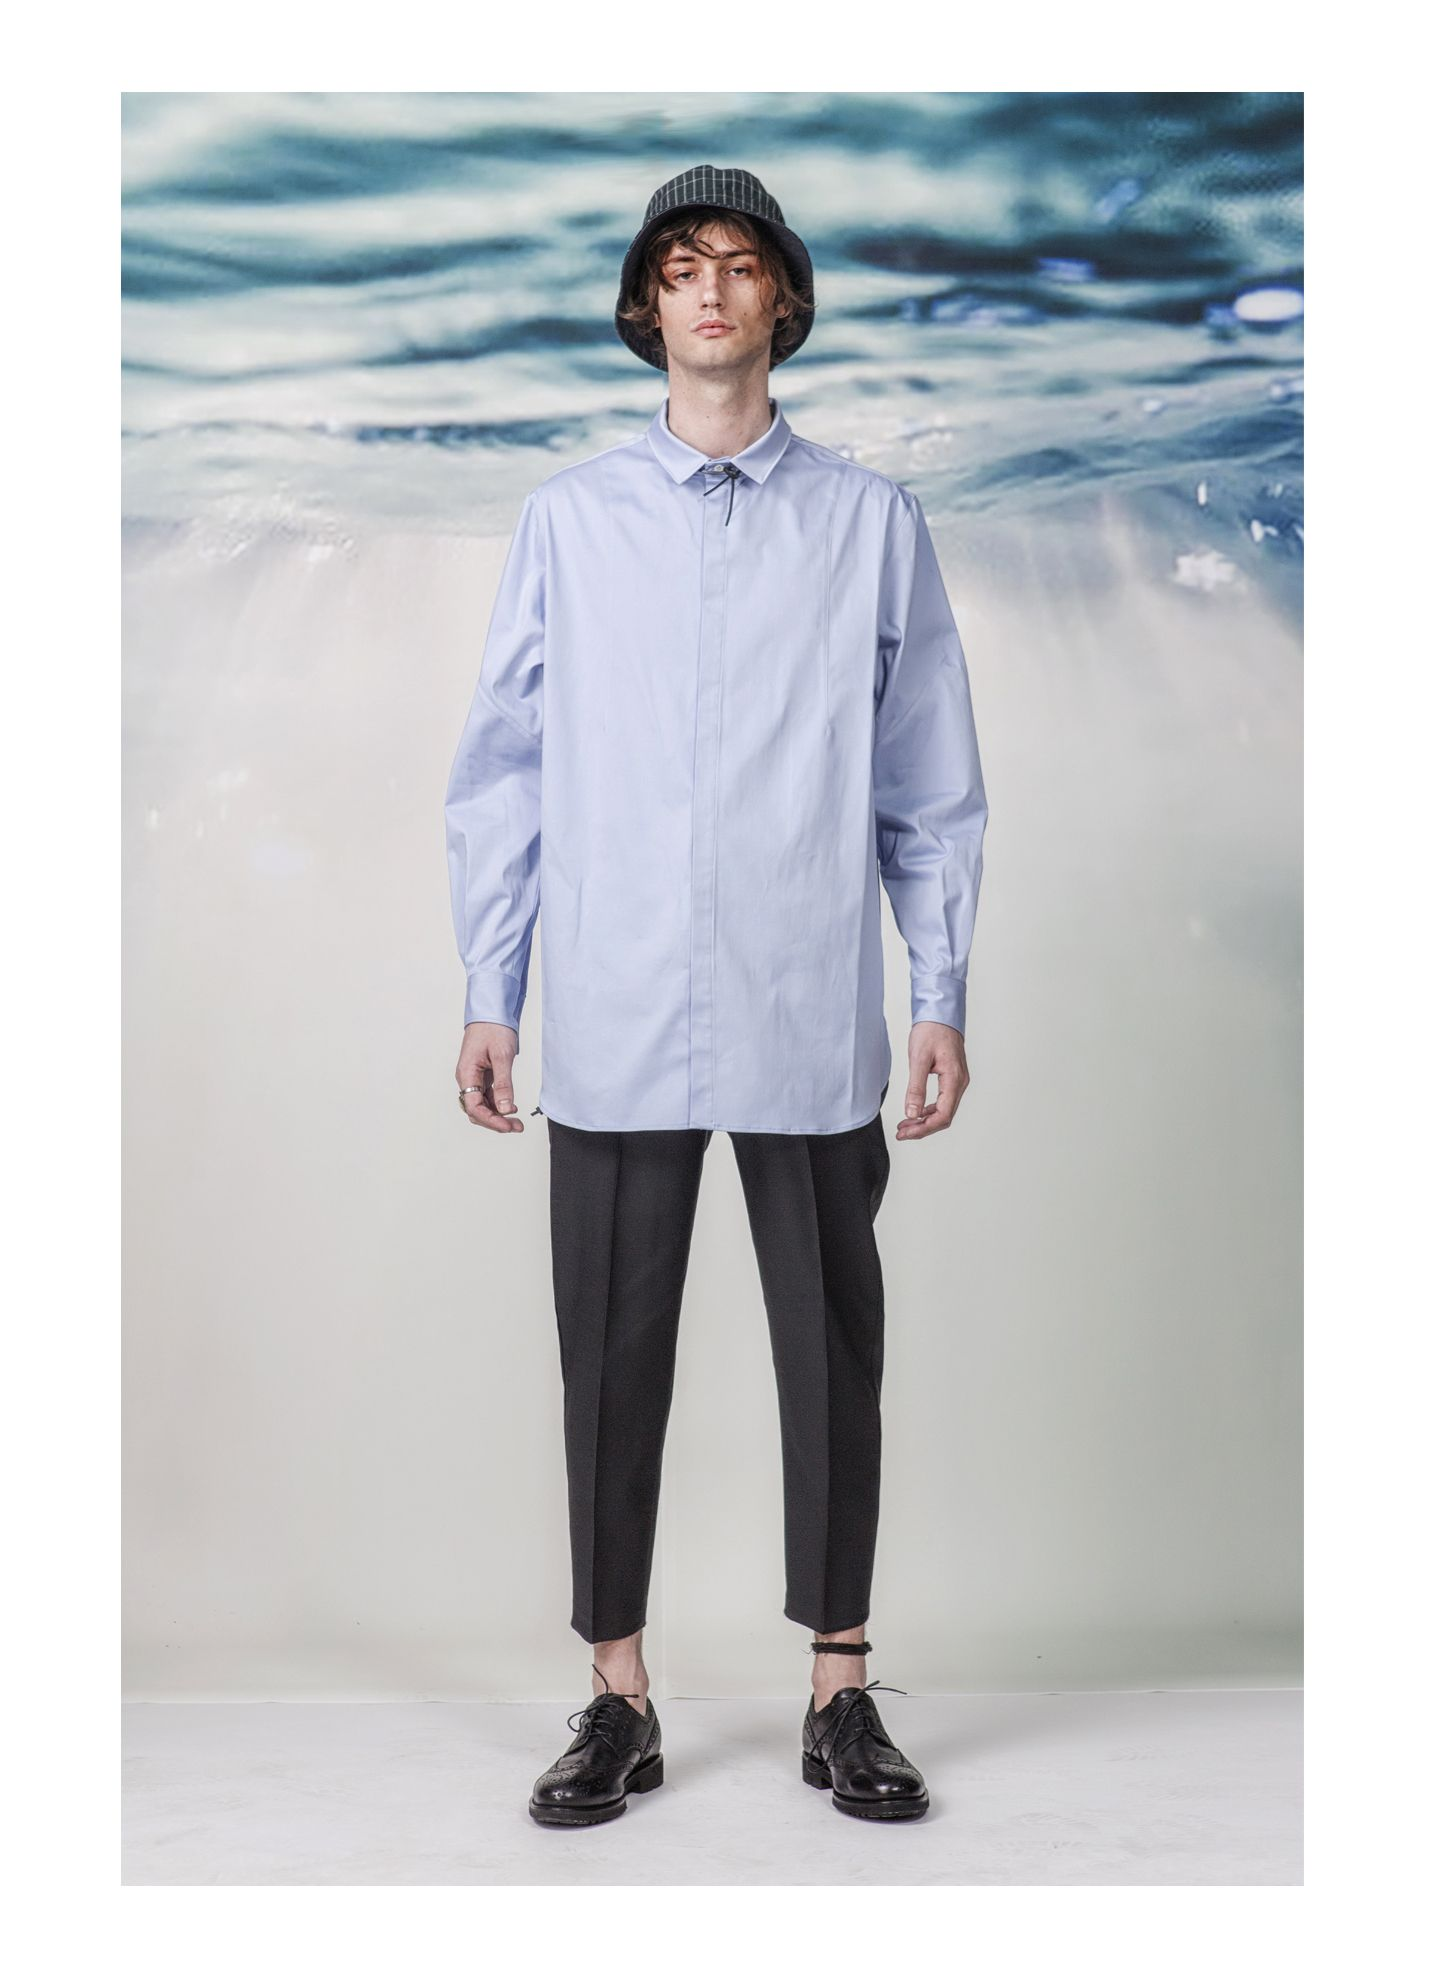 Andrea Lazzari - Aquarium Collection Spring Summer 2015 Primavera Verano - #Menswear #Trends #Tendencias #Moda Hombre - www.plusquemavie.com